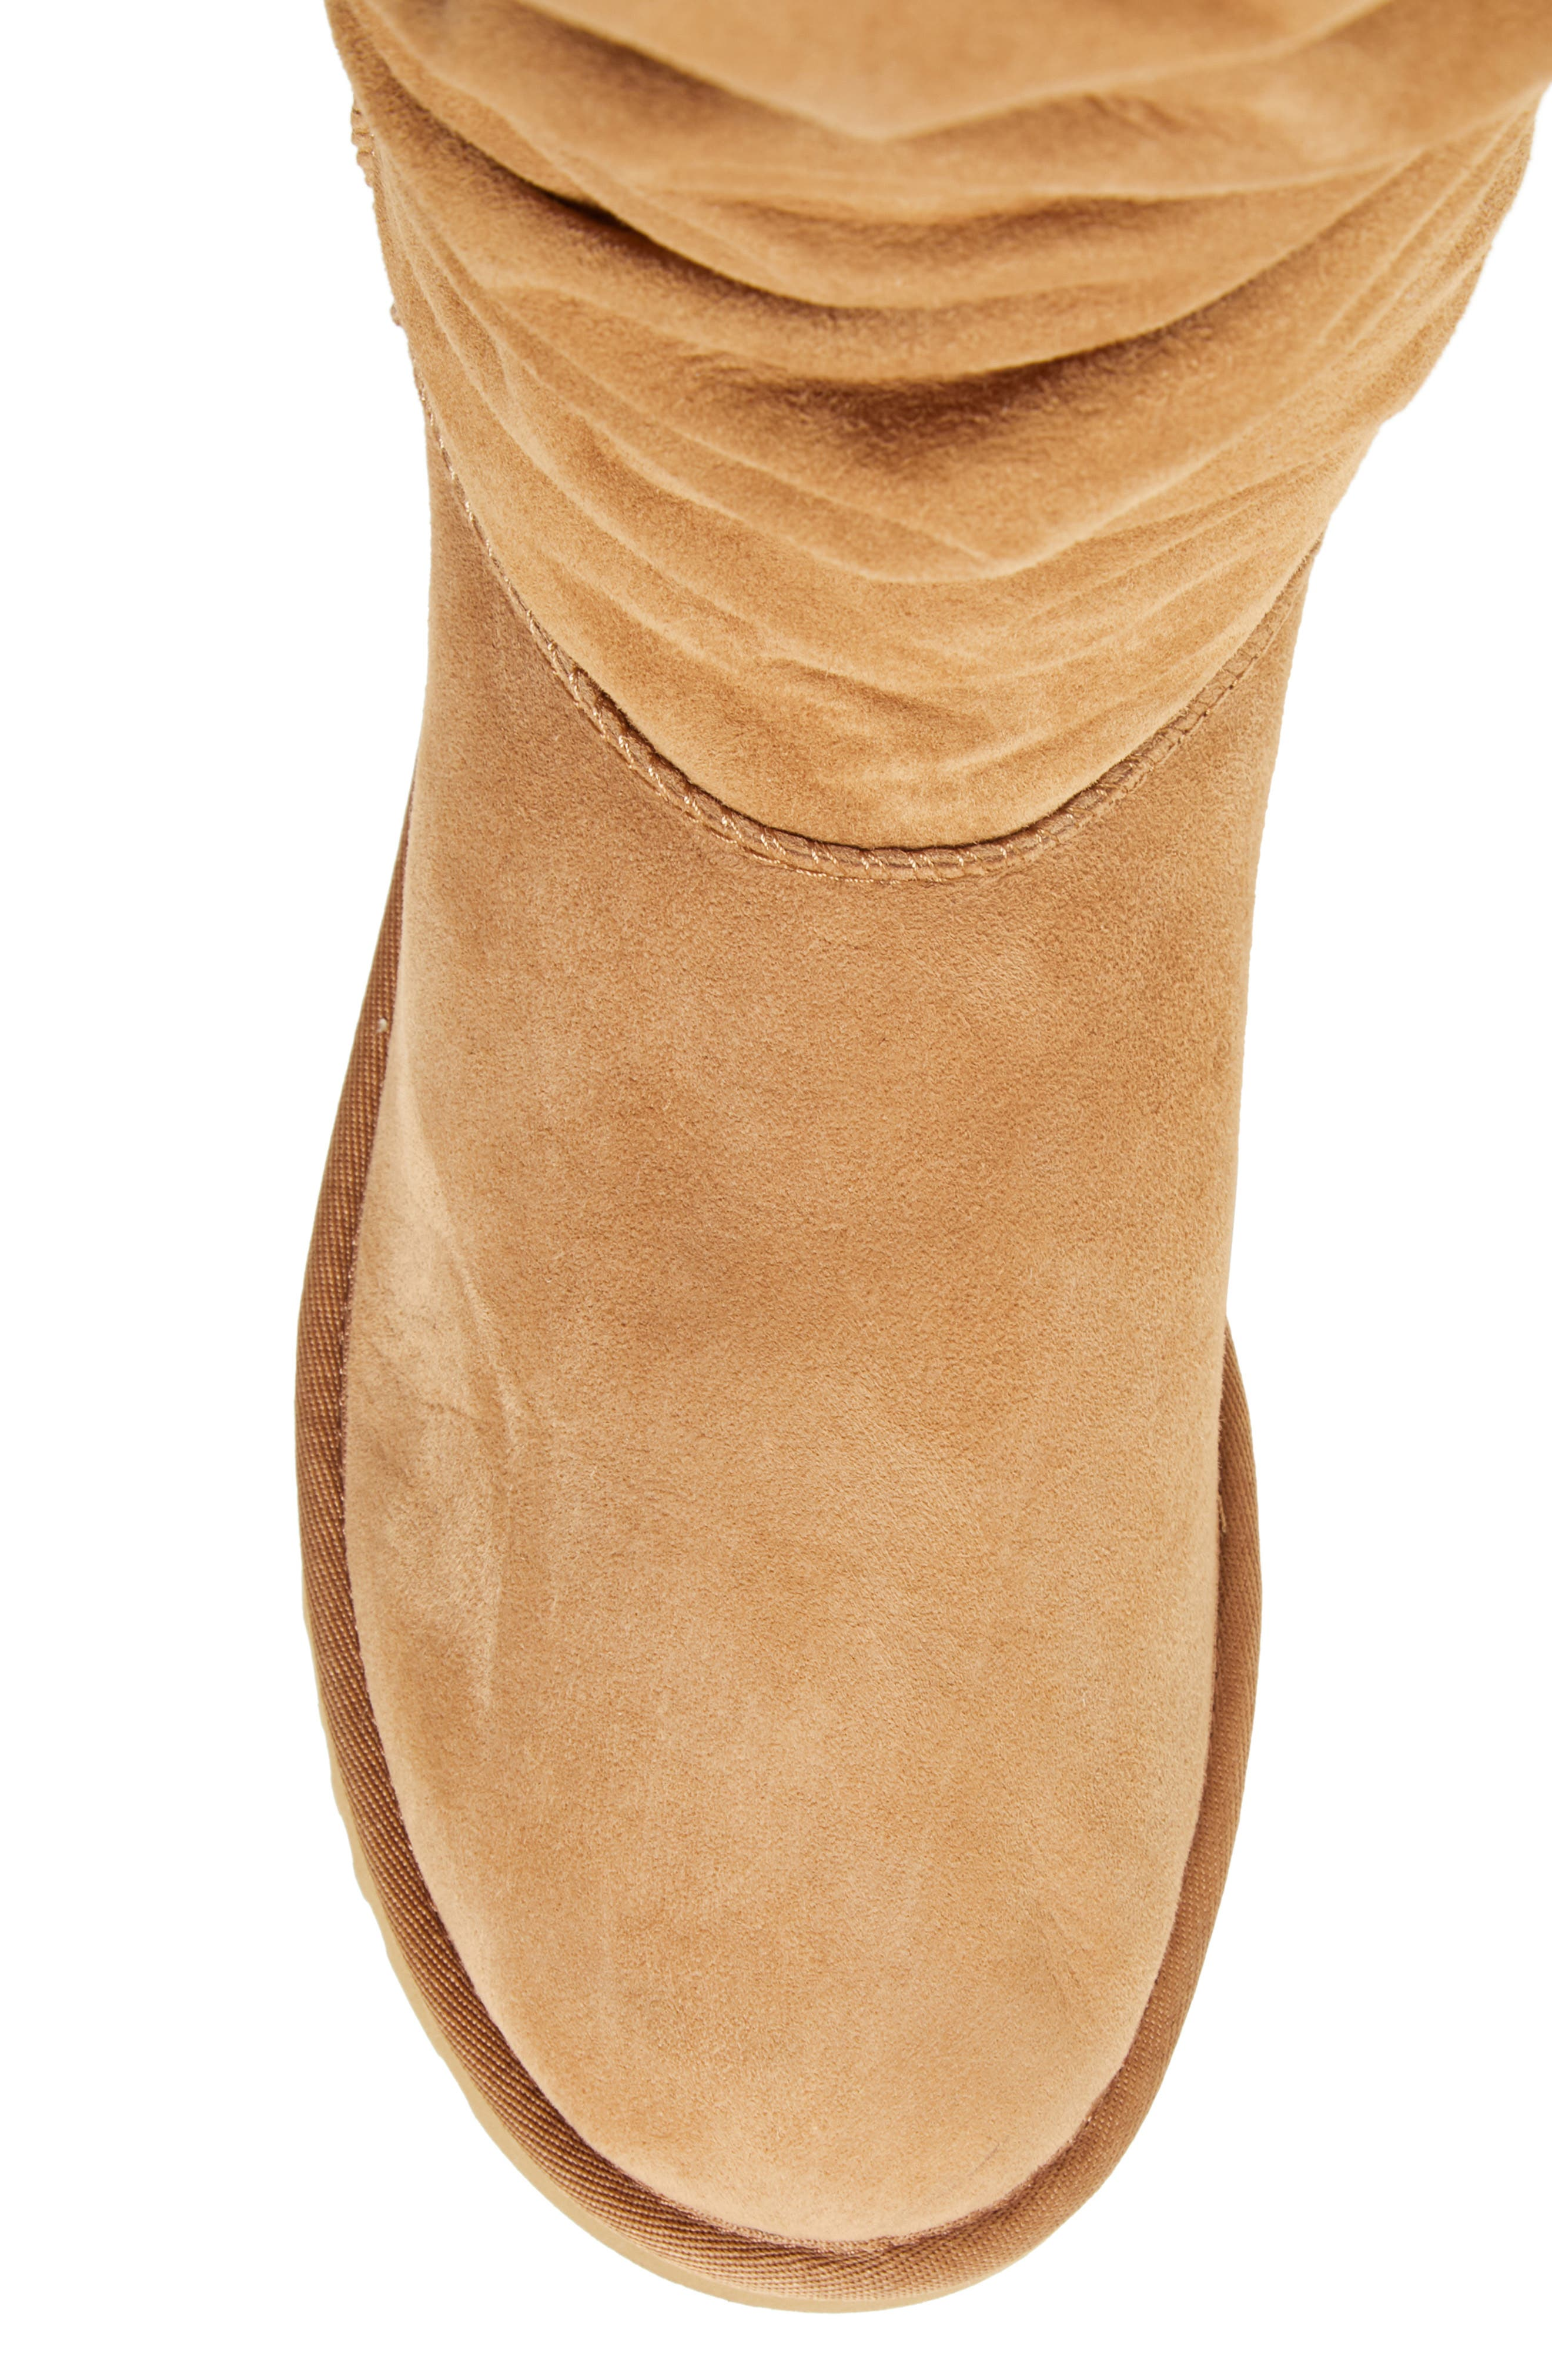 x UGG<sup>®</sup> Thigh High Boot,                             Alternate thumbnail 5, color,                             200